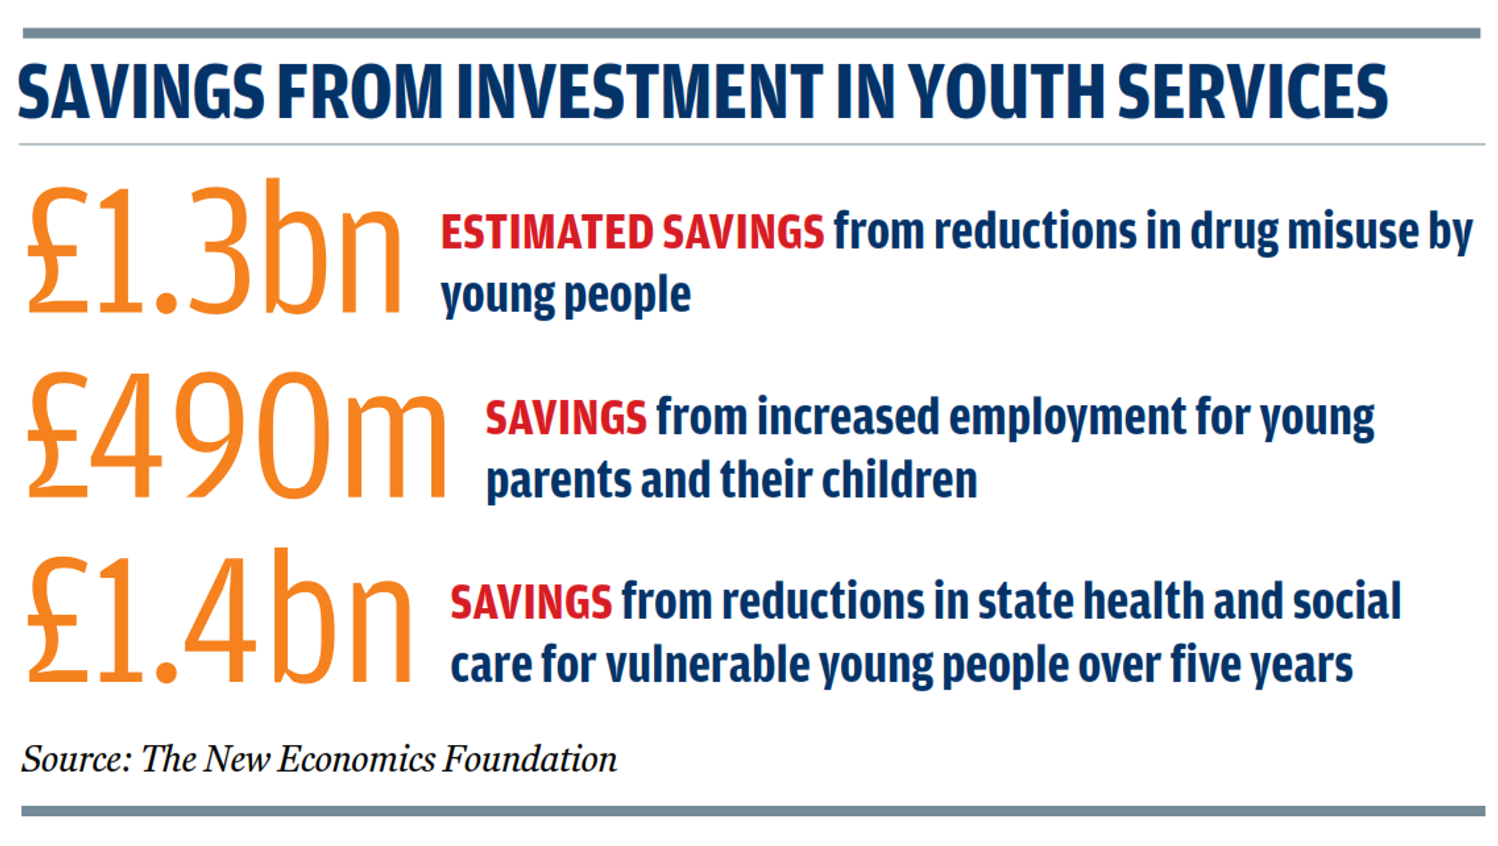 Investing in Youth Services